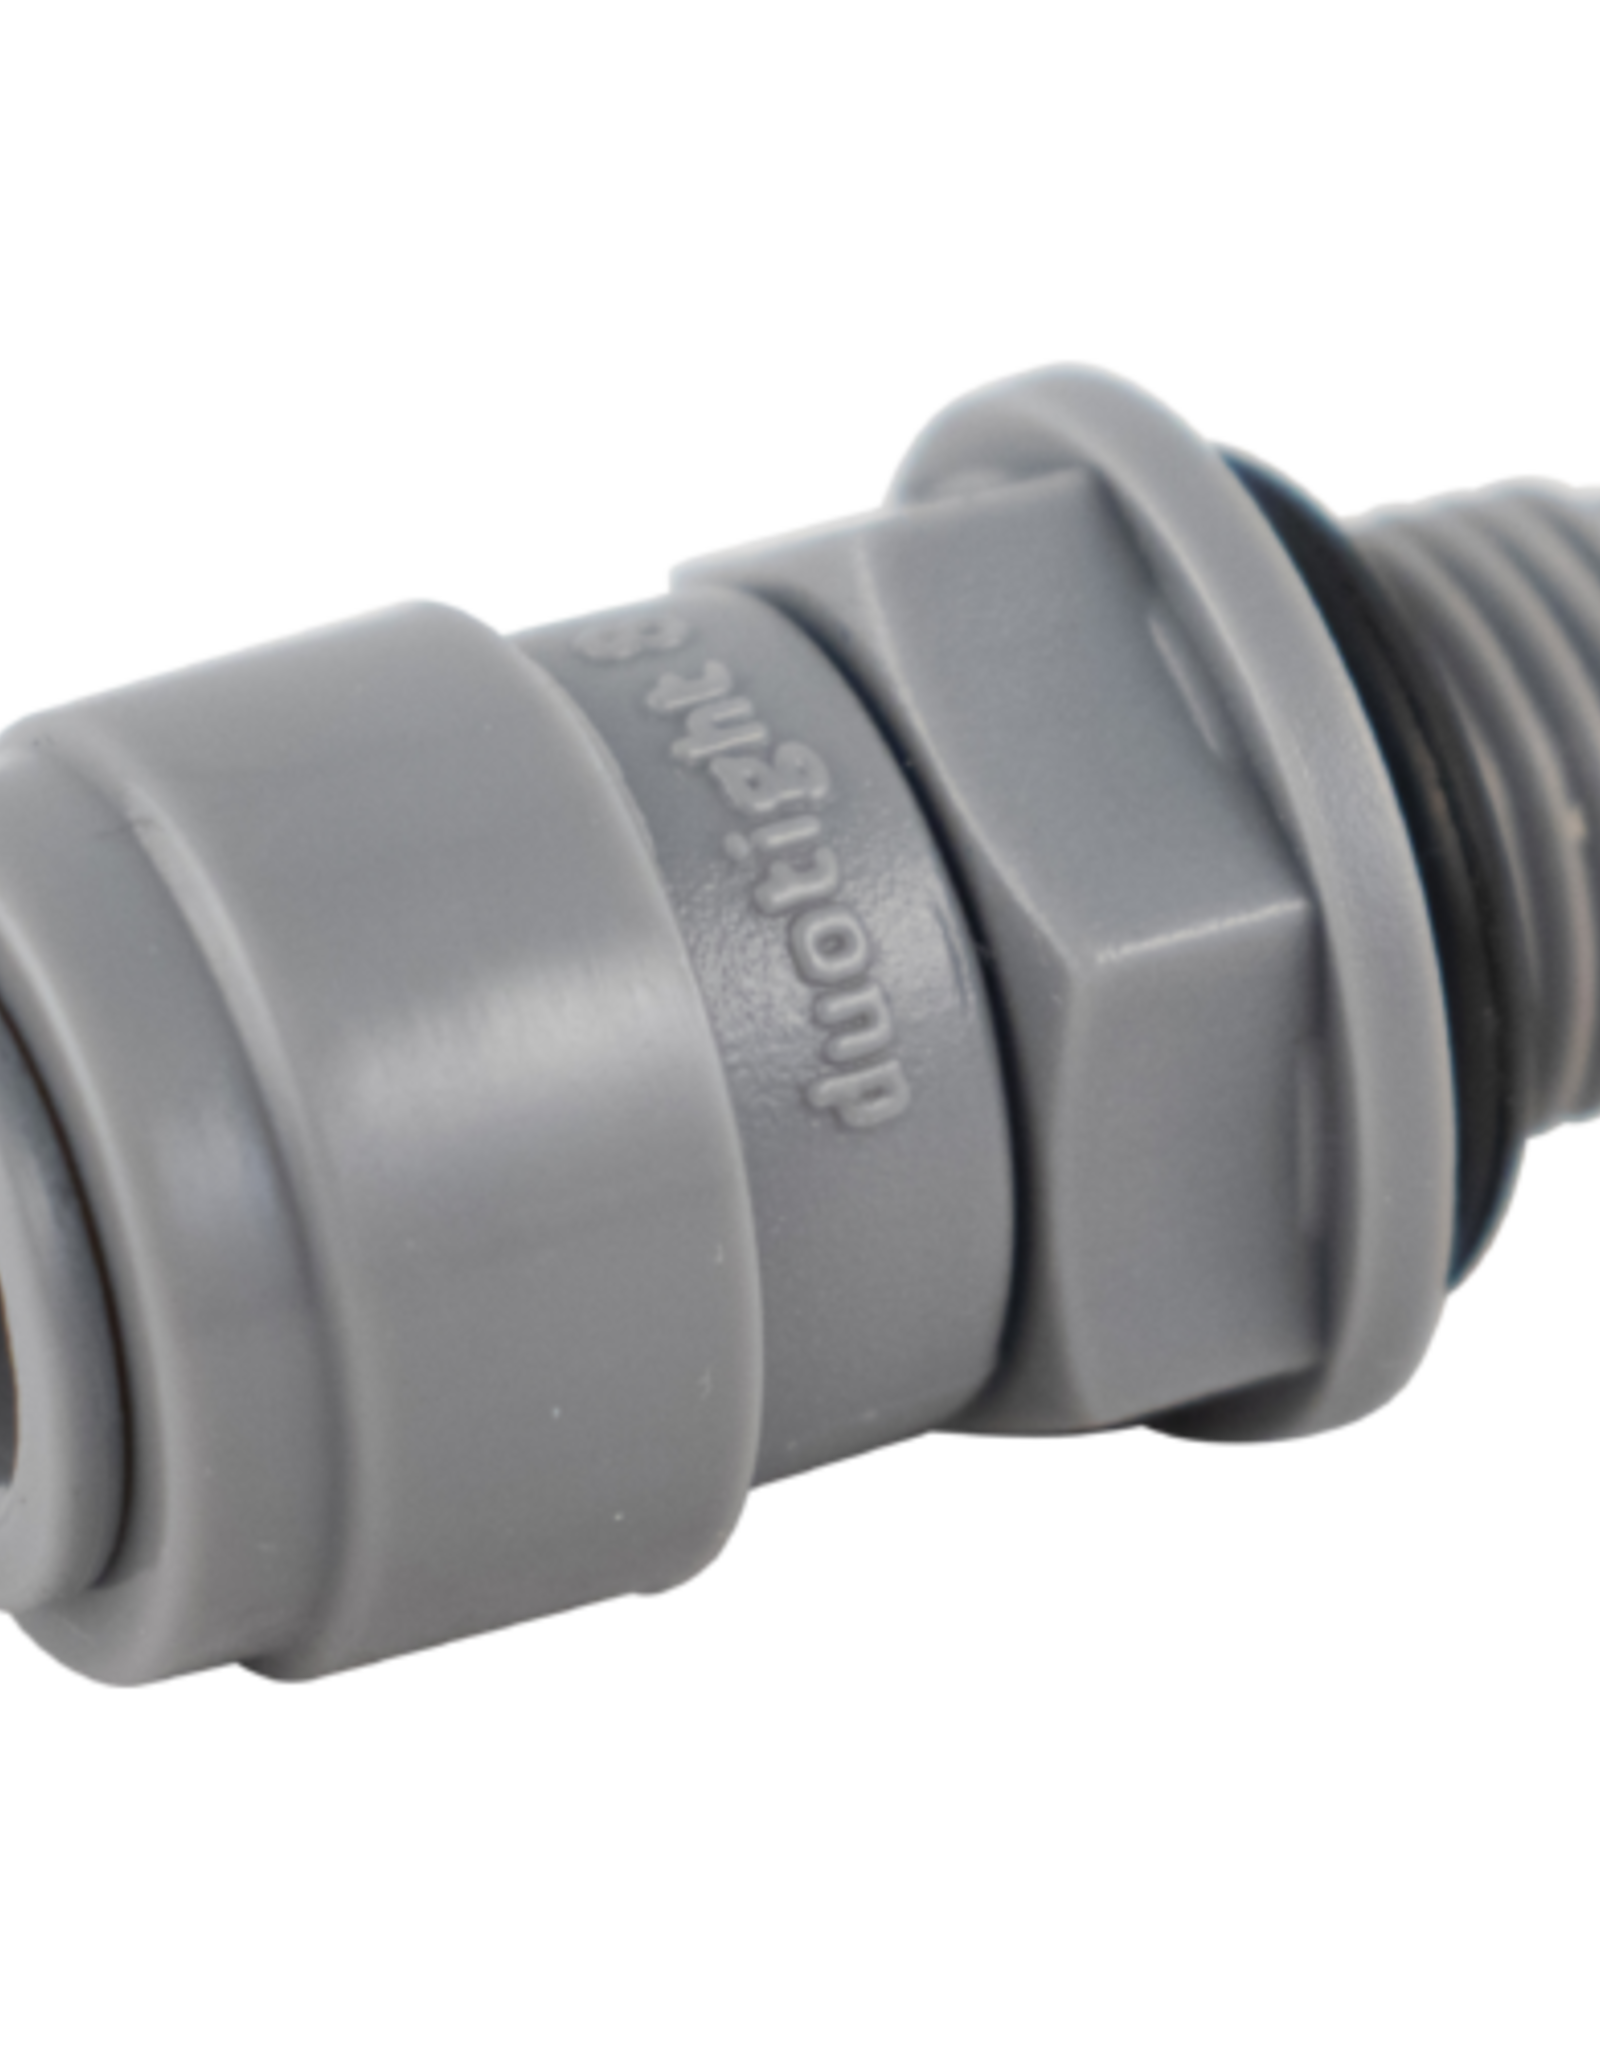 DUOTIGHT Duotight Push-In Fitting - 8 mm (5/16 in.) x 1/4 in. BSP